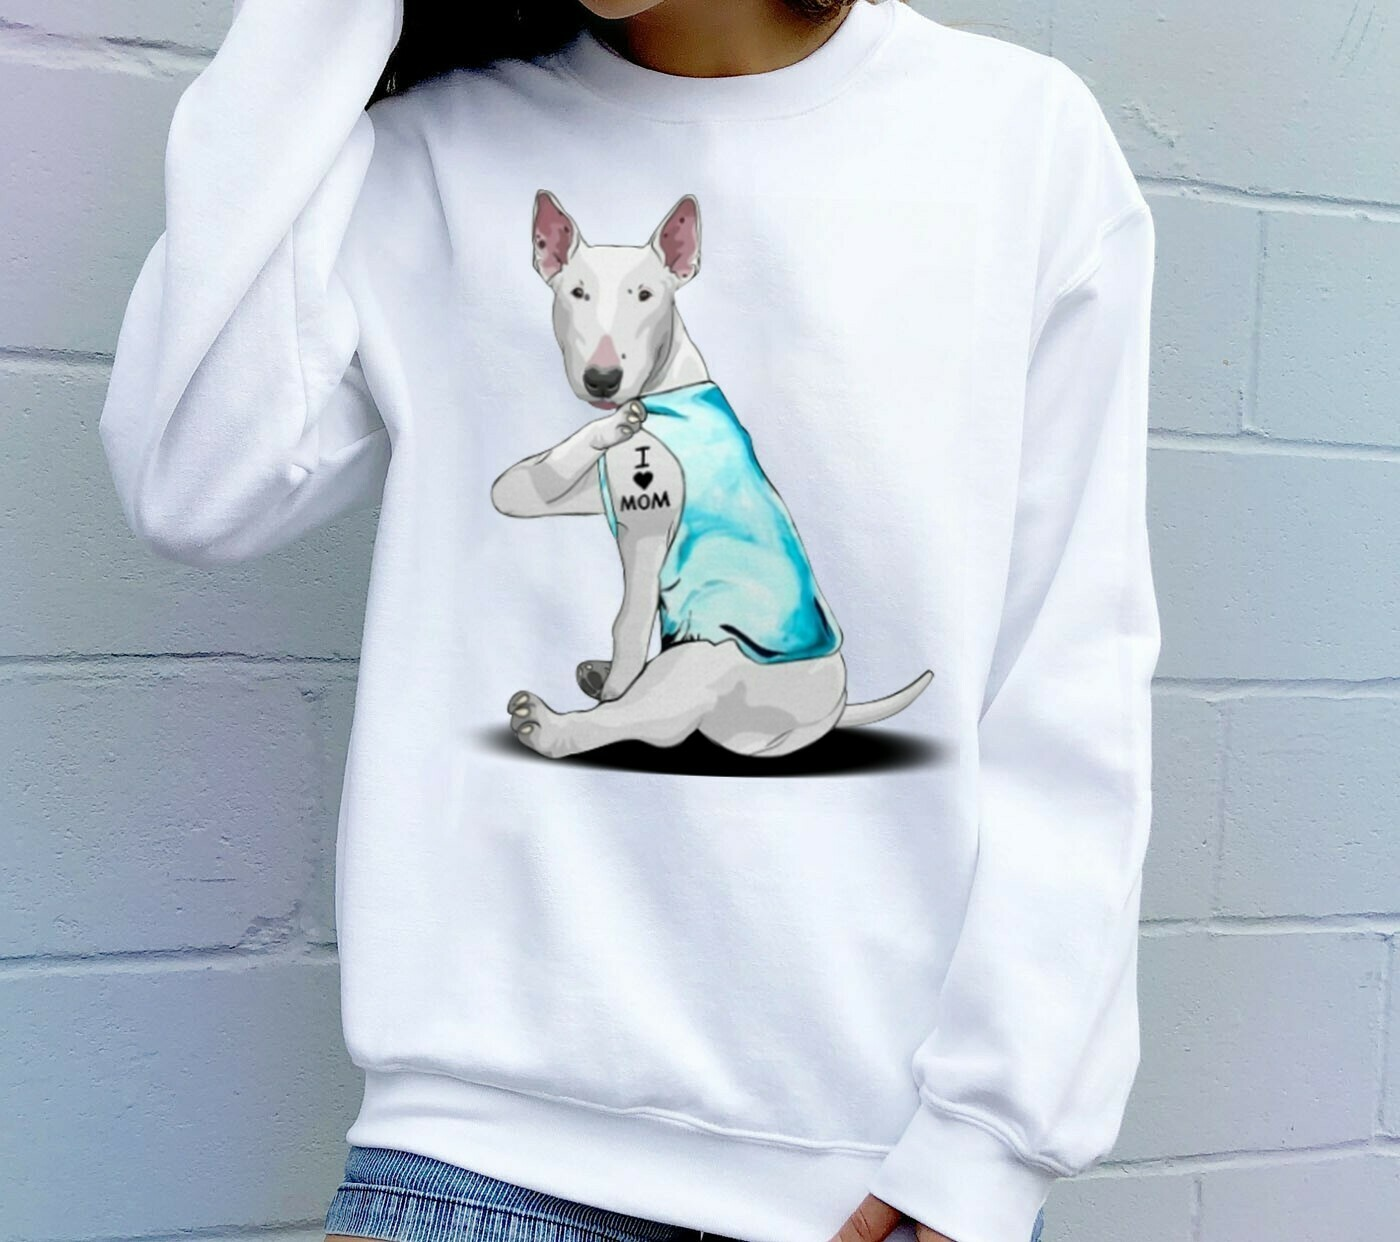 Bull Terrier Dog Tattoos I Love Mom Funny Shirt T-Shirt Hoodie Sweatshirt Sweater Tee Kids Youth Gifts Jolly Family Gifts